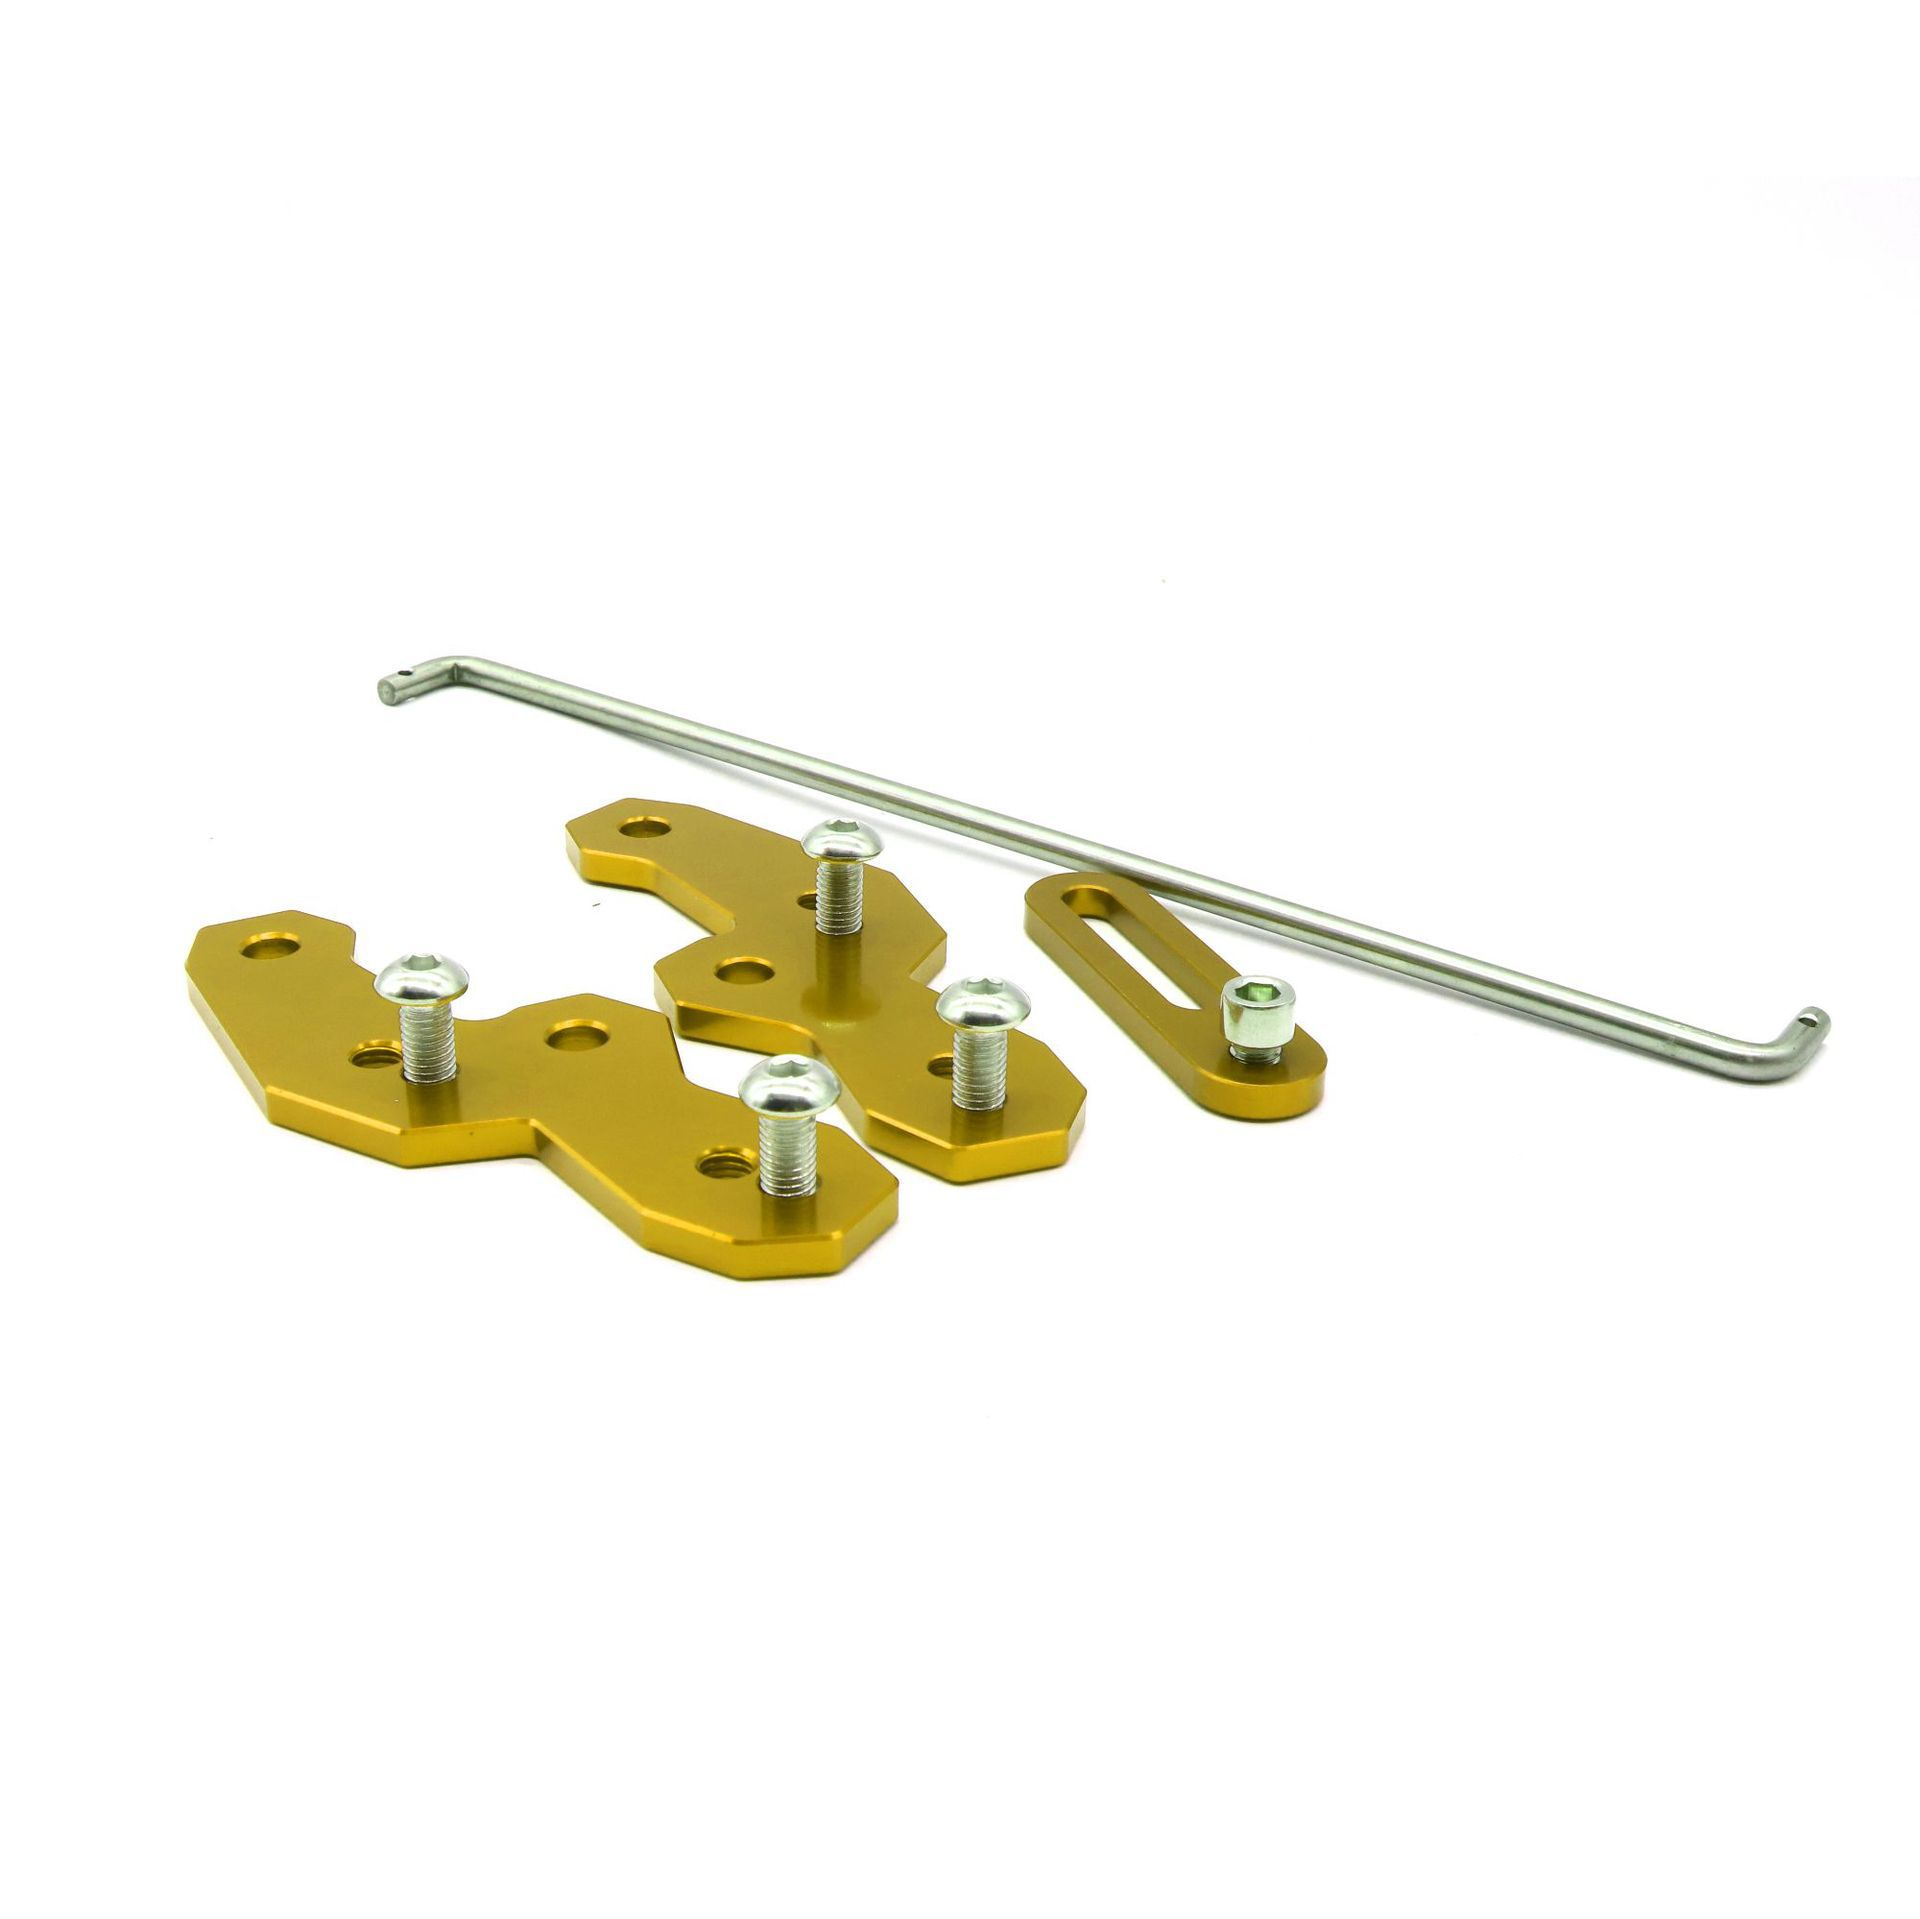 2PCSs Motorcycle Rearset Base  Aluminum Alloy Foot Pegs Motorbike Refitting Accessories for YAMAHA R15 V3 gold